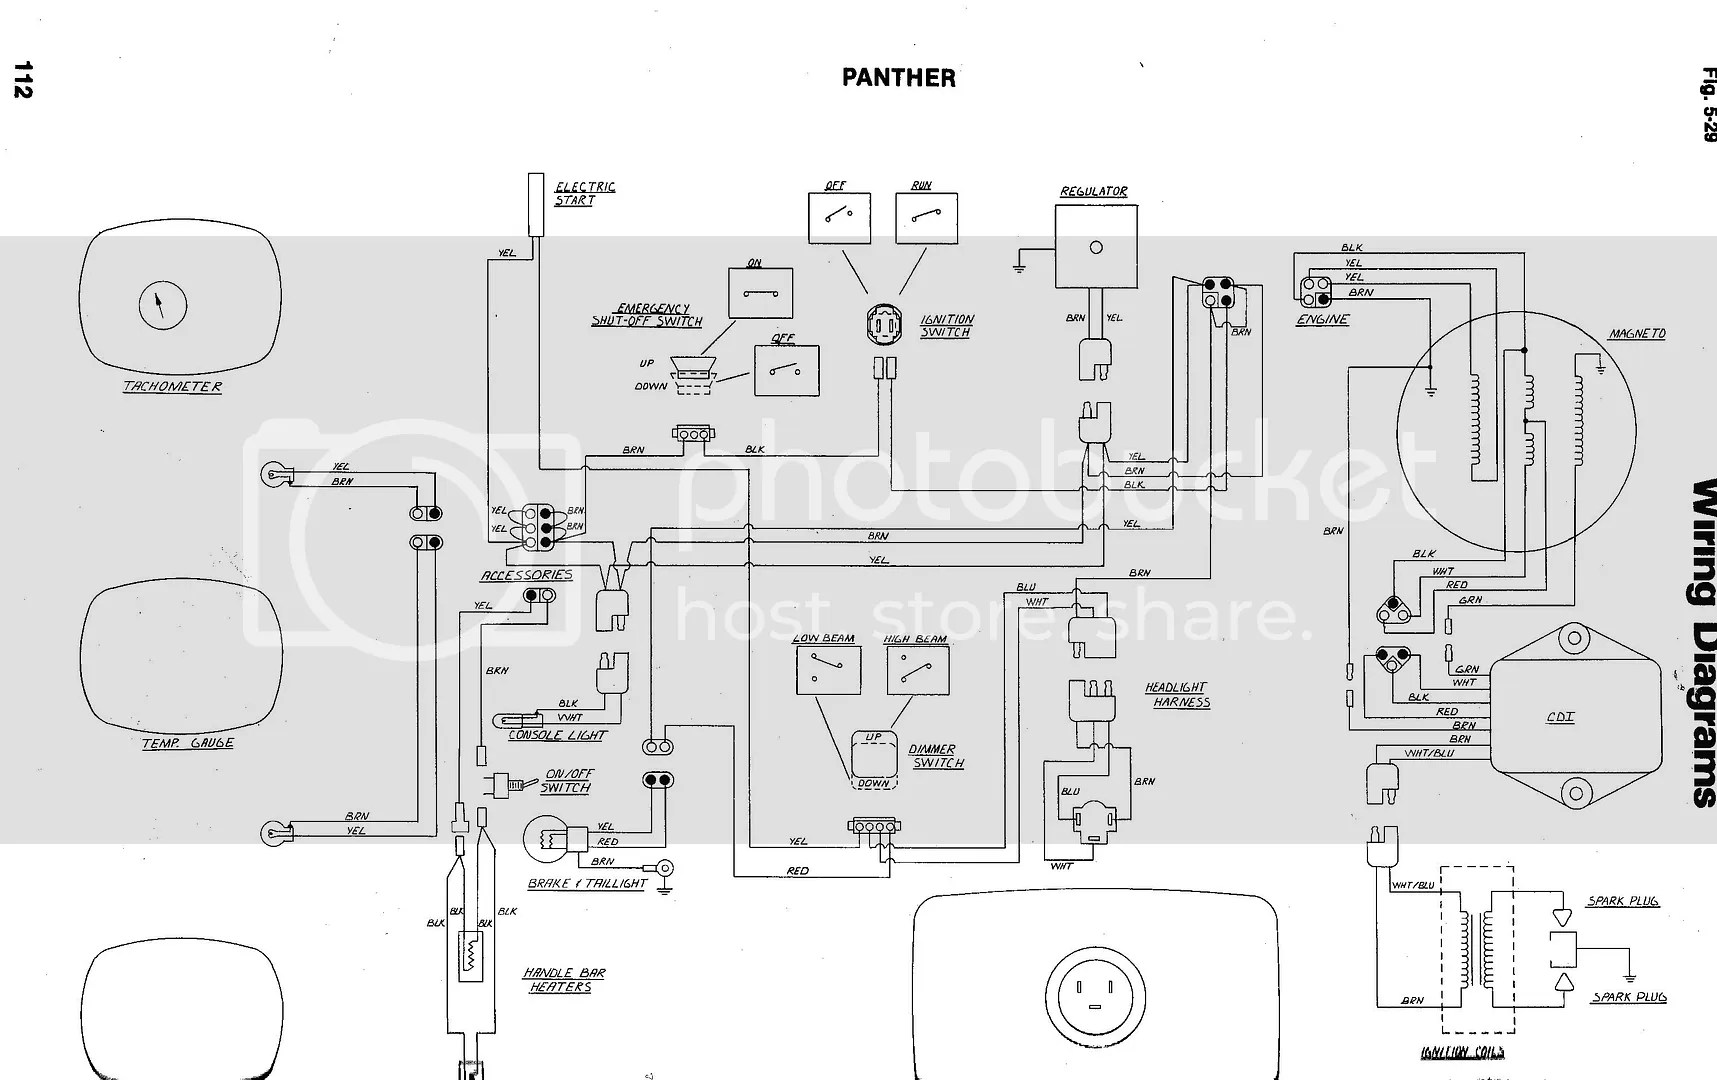 hight resolution of jag 340 wiring diagram automotive wiring diagrams 1999 arctic cat jag 340 arctic cat 340 engine